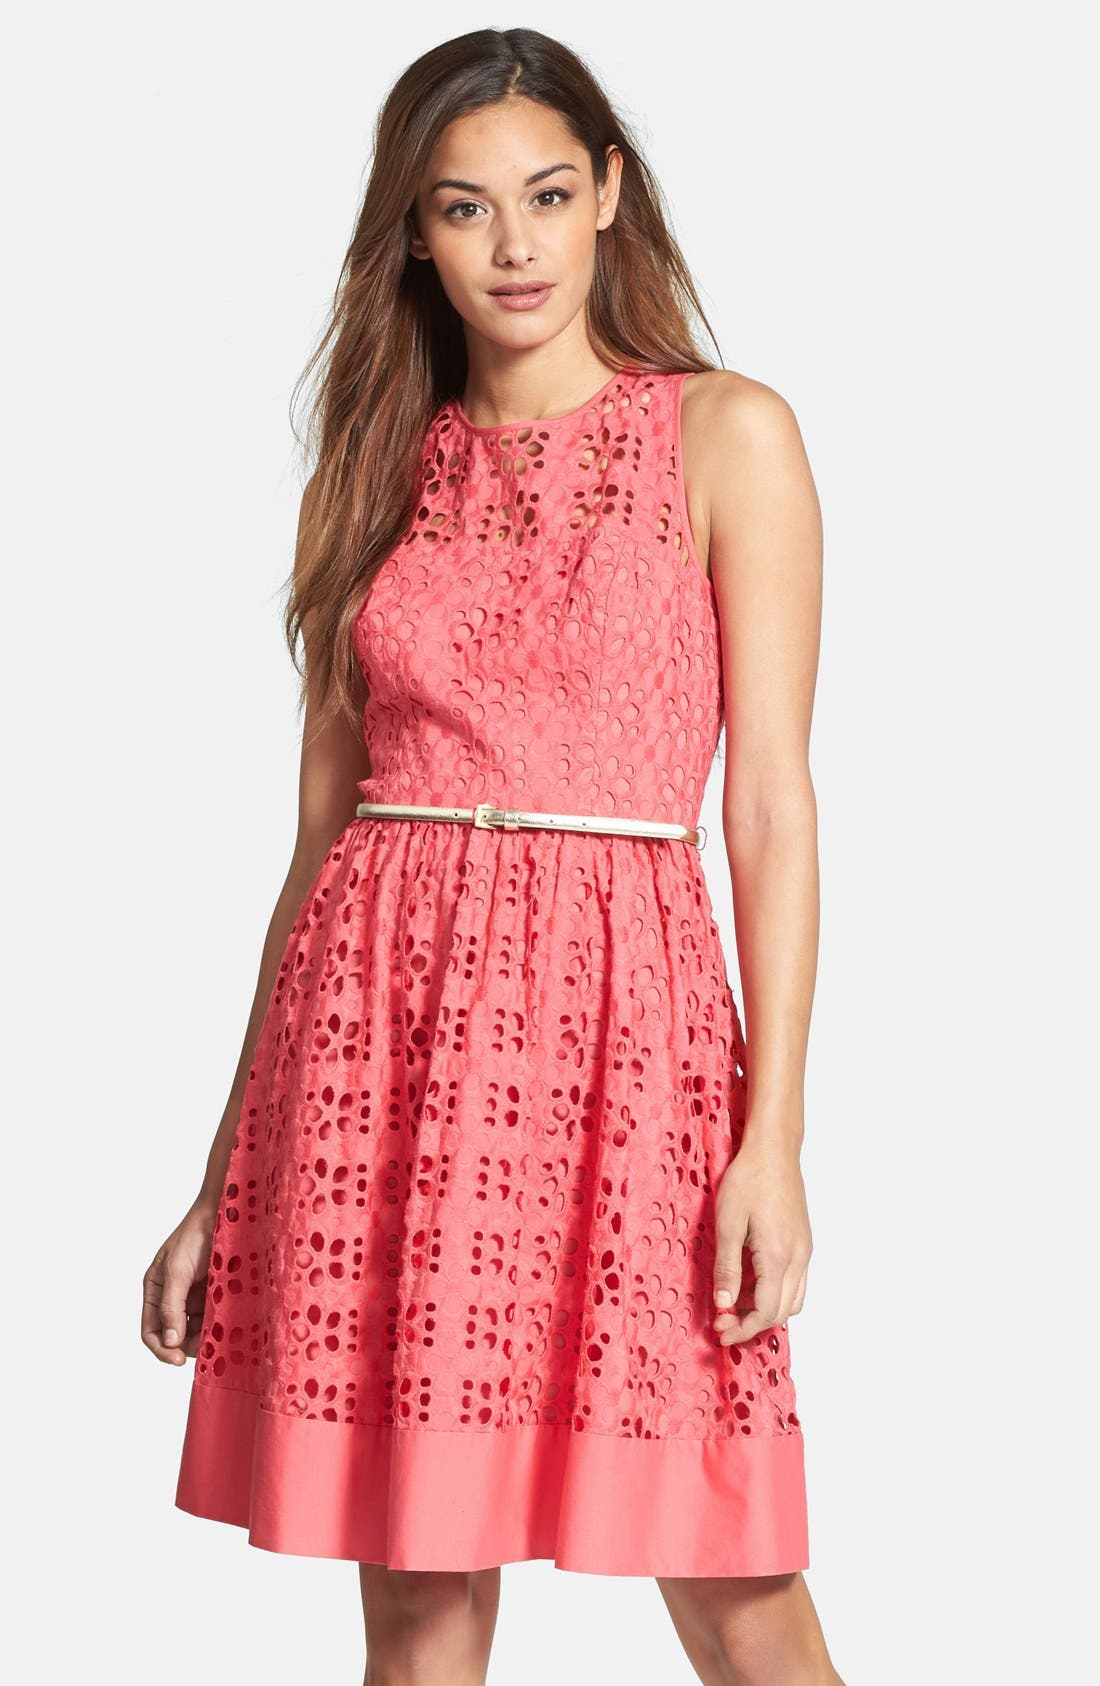 Alternate Image 1 Selected - Eliza J Cotton Eyelet Belted Fit & Flare Dress (Regular & Petite)